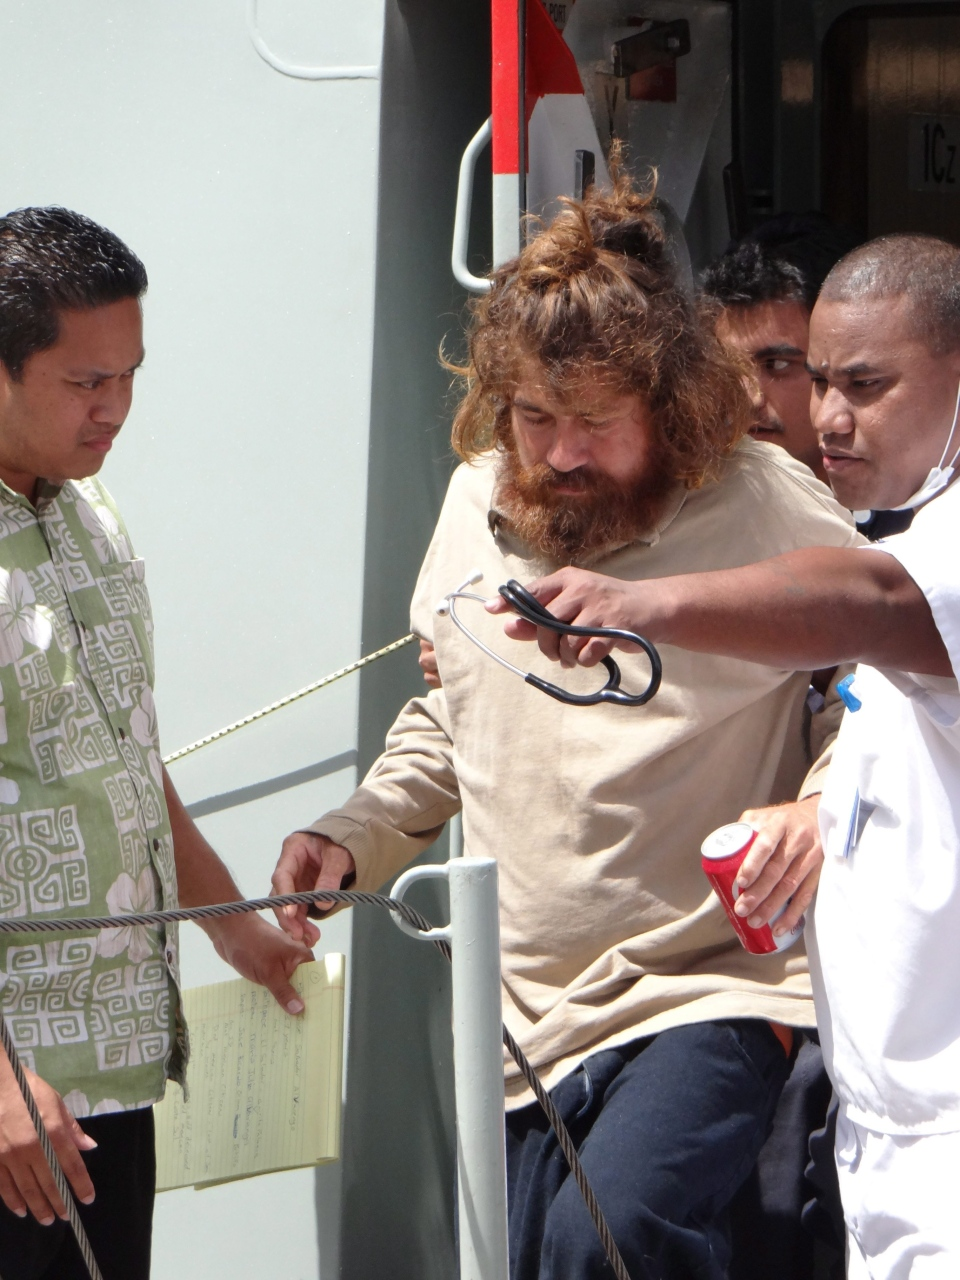 A man who identifies himself as Jose Salvador Alvarenga, centre, gets off a ship in Majuro, the Marshall Islands, after he was rescued from being washed ashore on the tiny atoll of Ebon in the Pacific Ocean, Monday, Feb. 3, 2014. (AP / Marshall Island Journal)